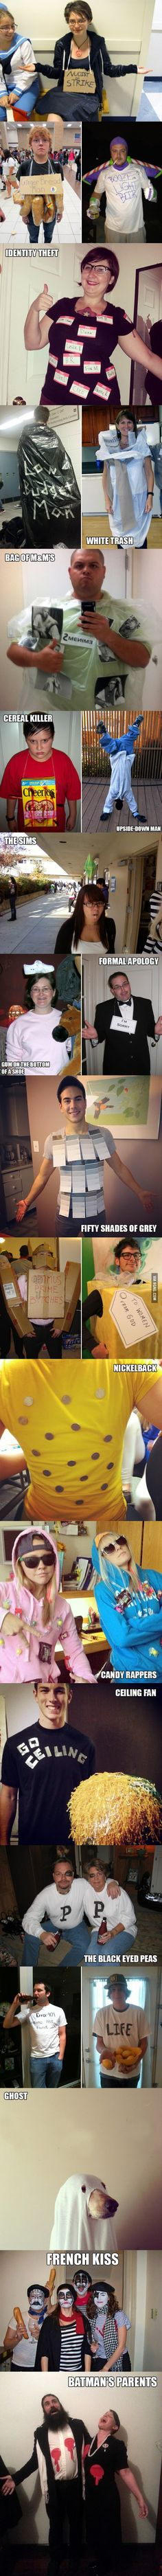 Last-minute Halloween costumes holidays quotes funny hilarious Last-minute Halloween costumes